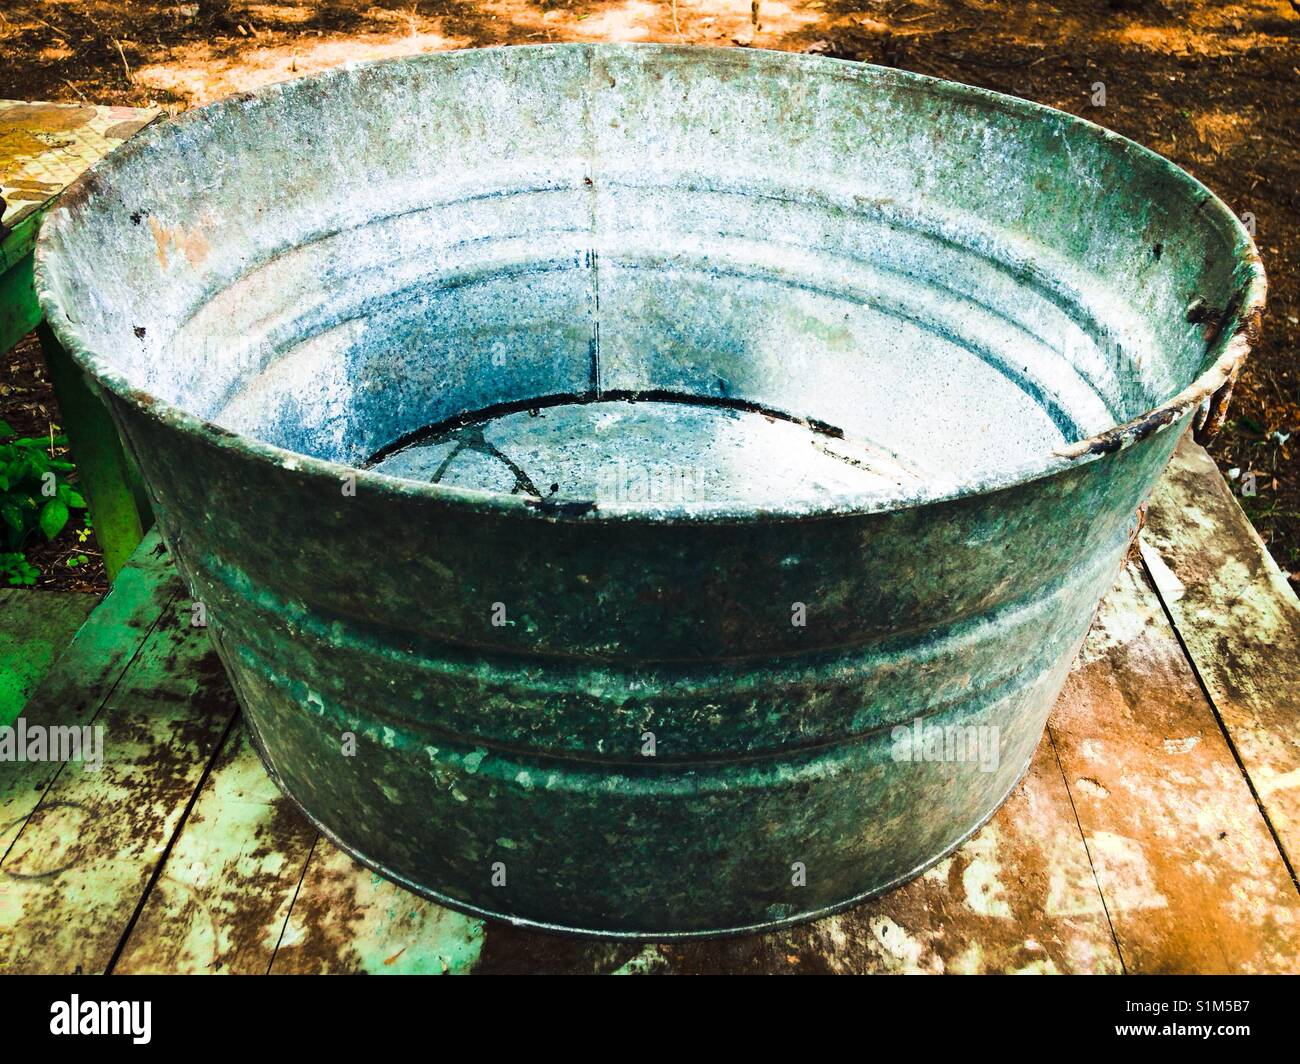 Old washtub found in basement sitting on old table - Stock Image